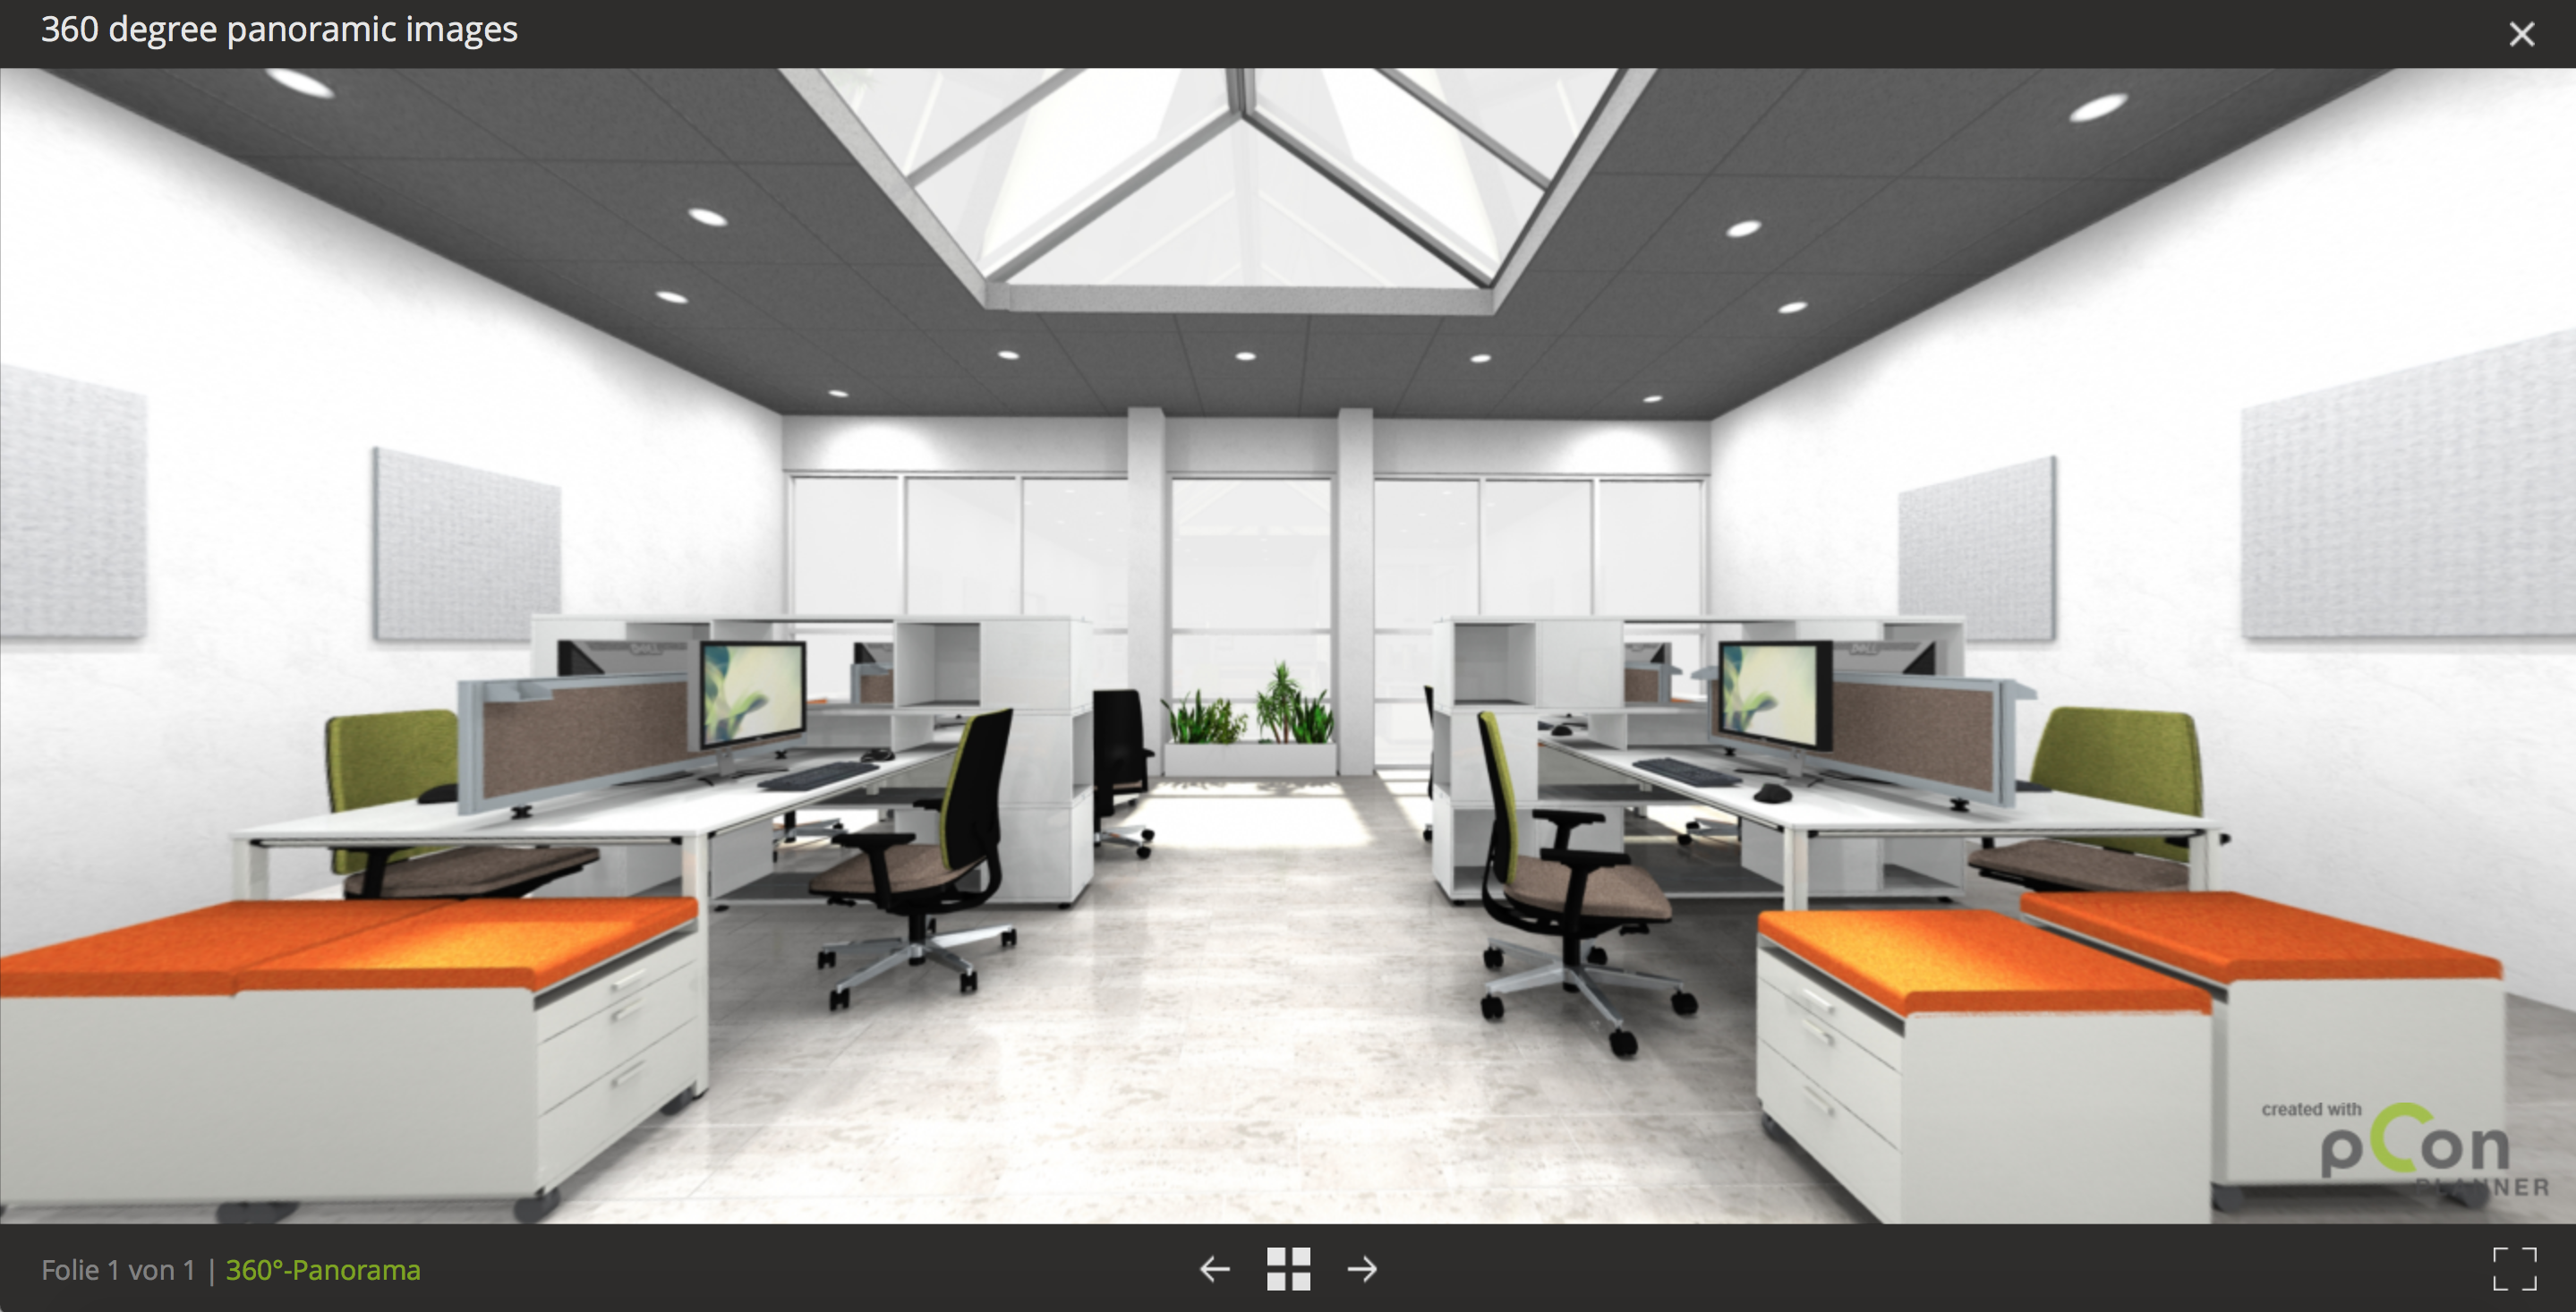 When a picture just isnt enough... room planning presentation pCon.planner panorama impress image rendering